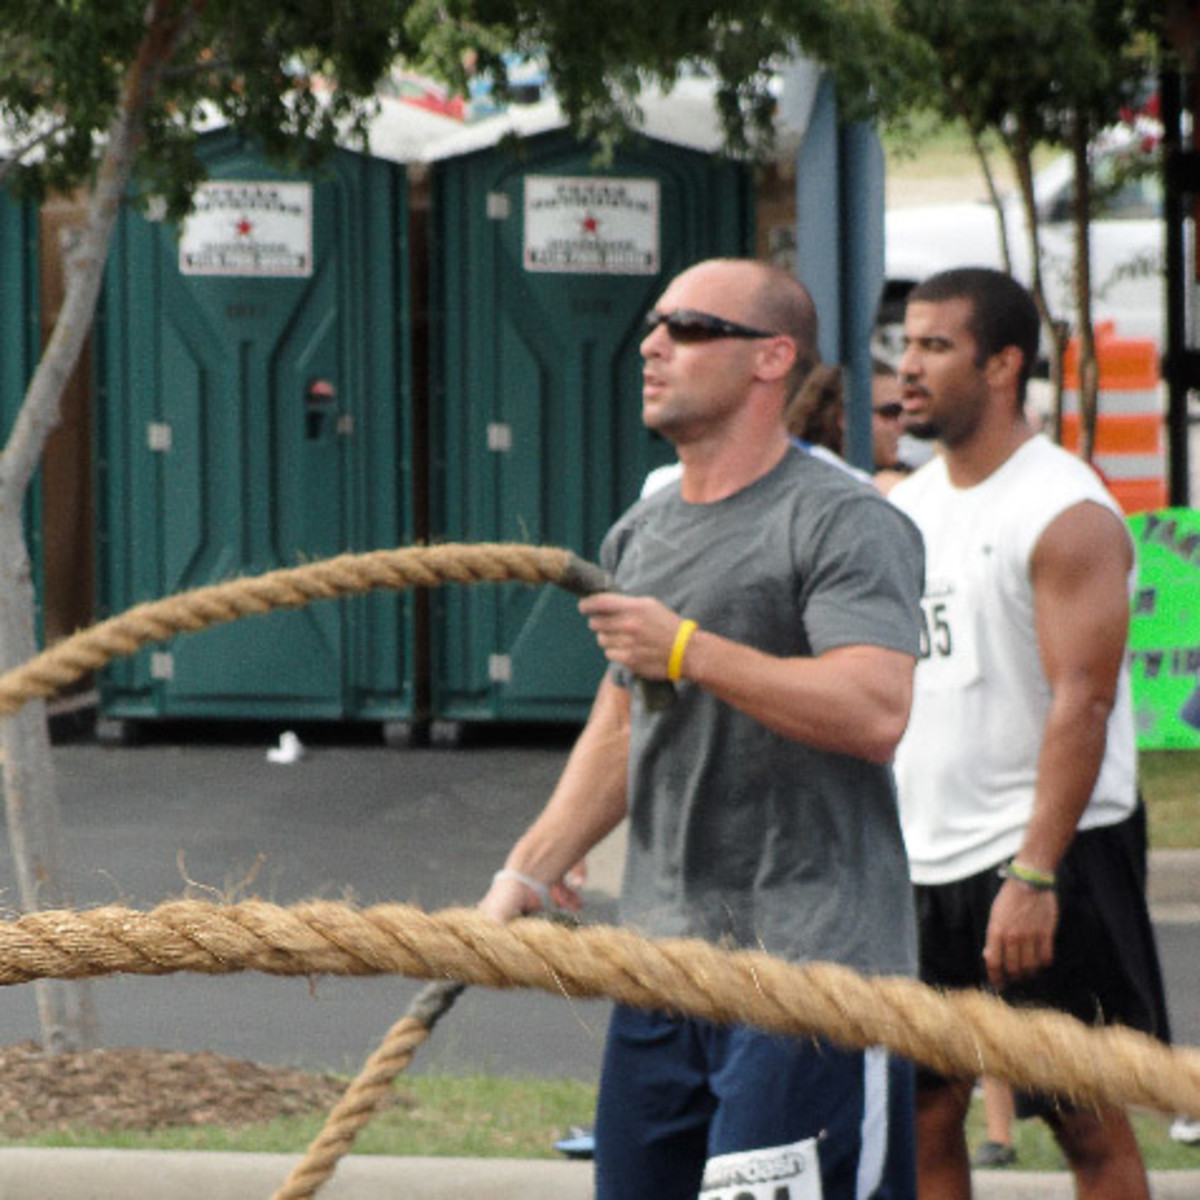 News_Greg Scheinman_Crossfit